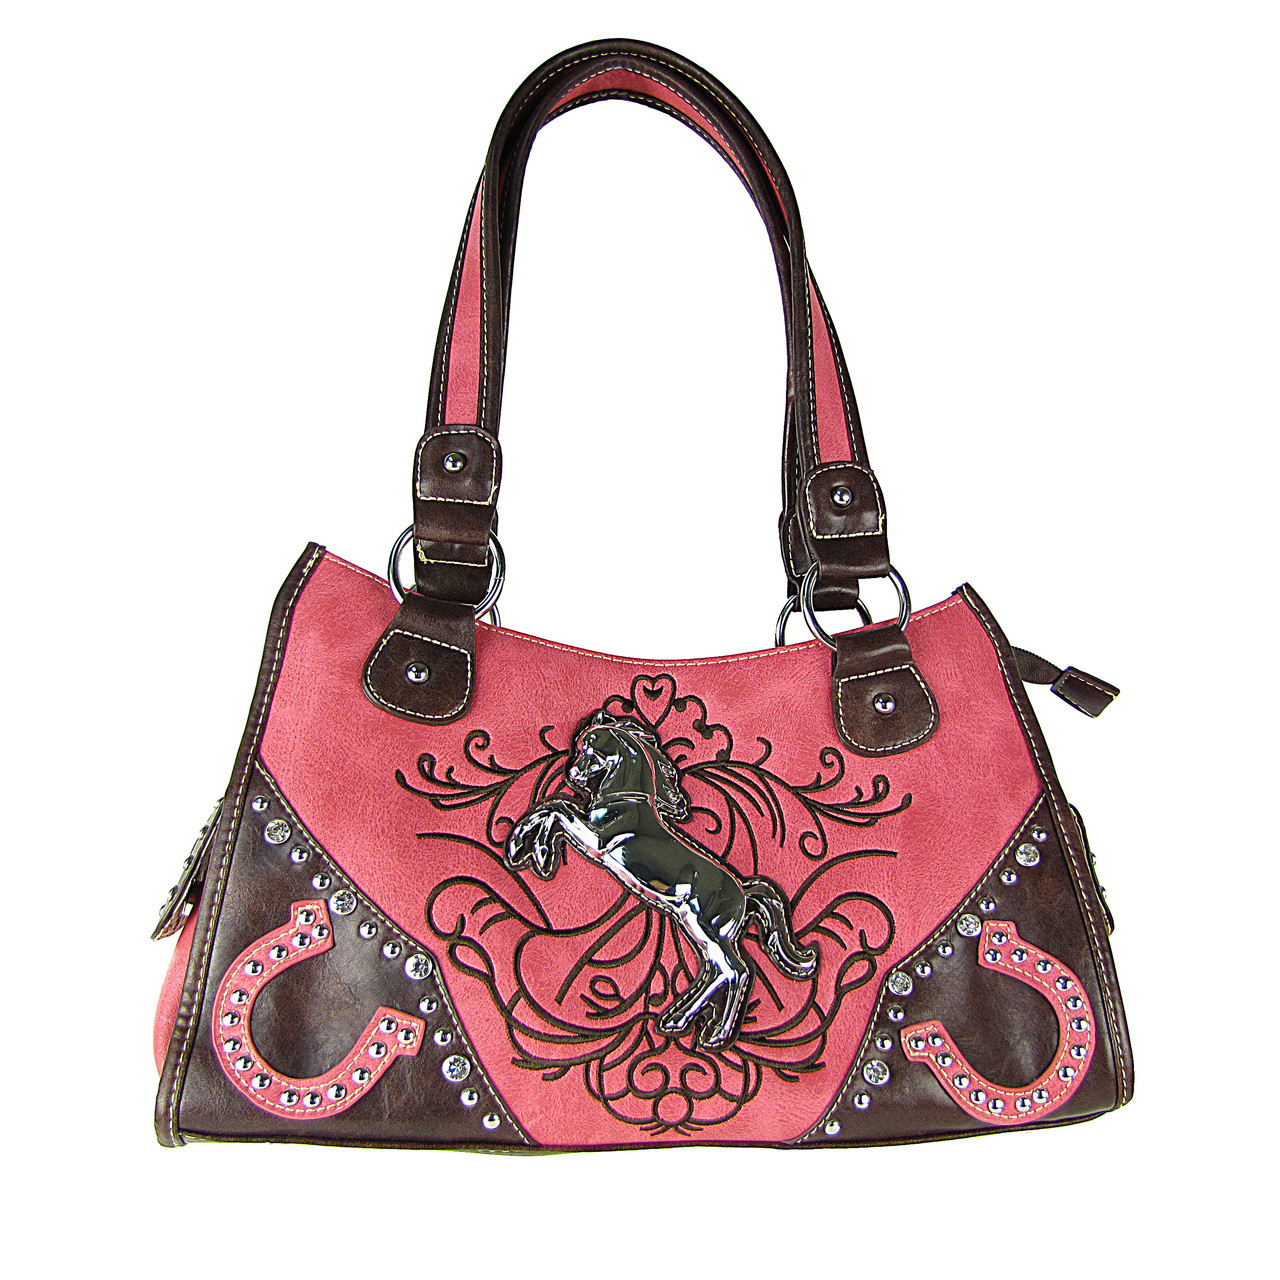 HOT PINK WESTERN STUDDED RHINESTONE HORSE LOOK SHOULDER HANDBAG HB1-CHF0097HPK